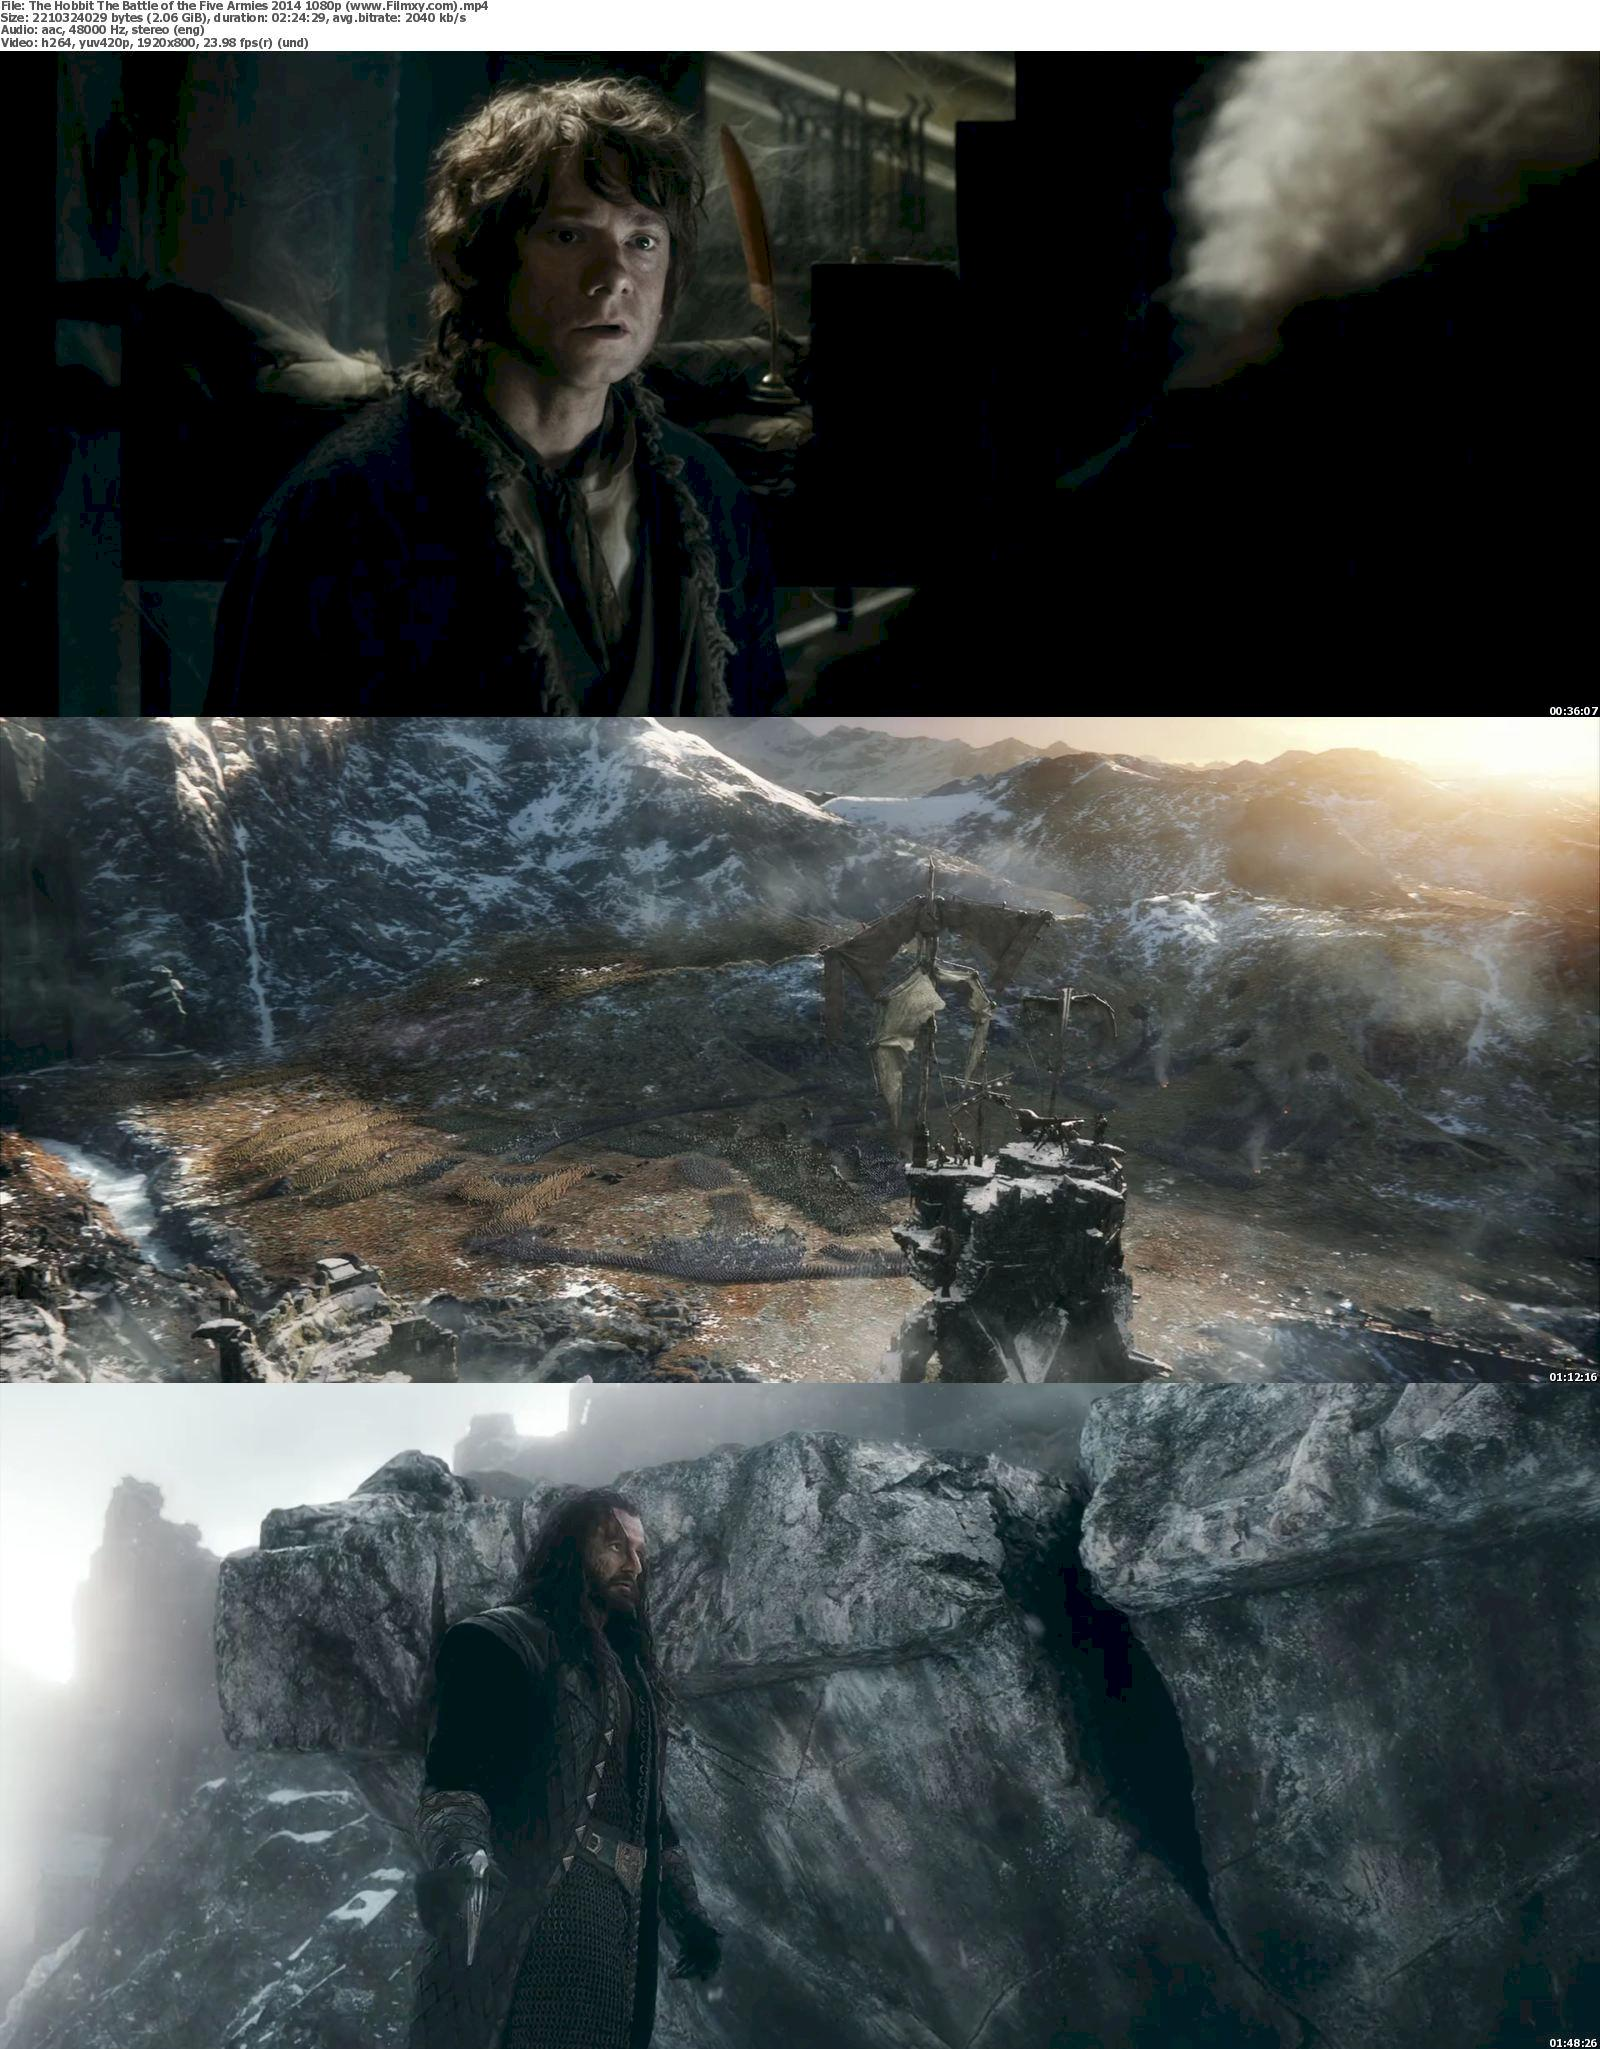 The Hobbit: Battle Of The Five Armies (2014) 720p & 1080p Bluray Free Download 1080p Screenshot